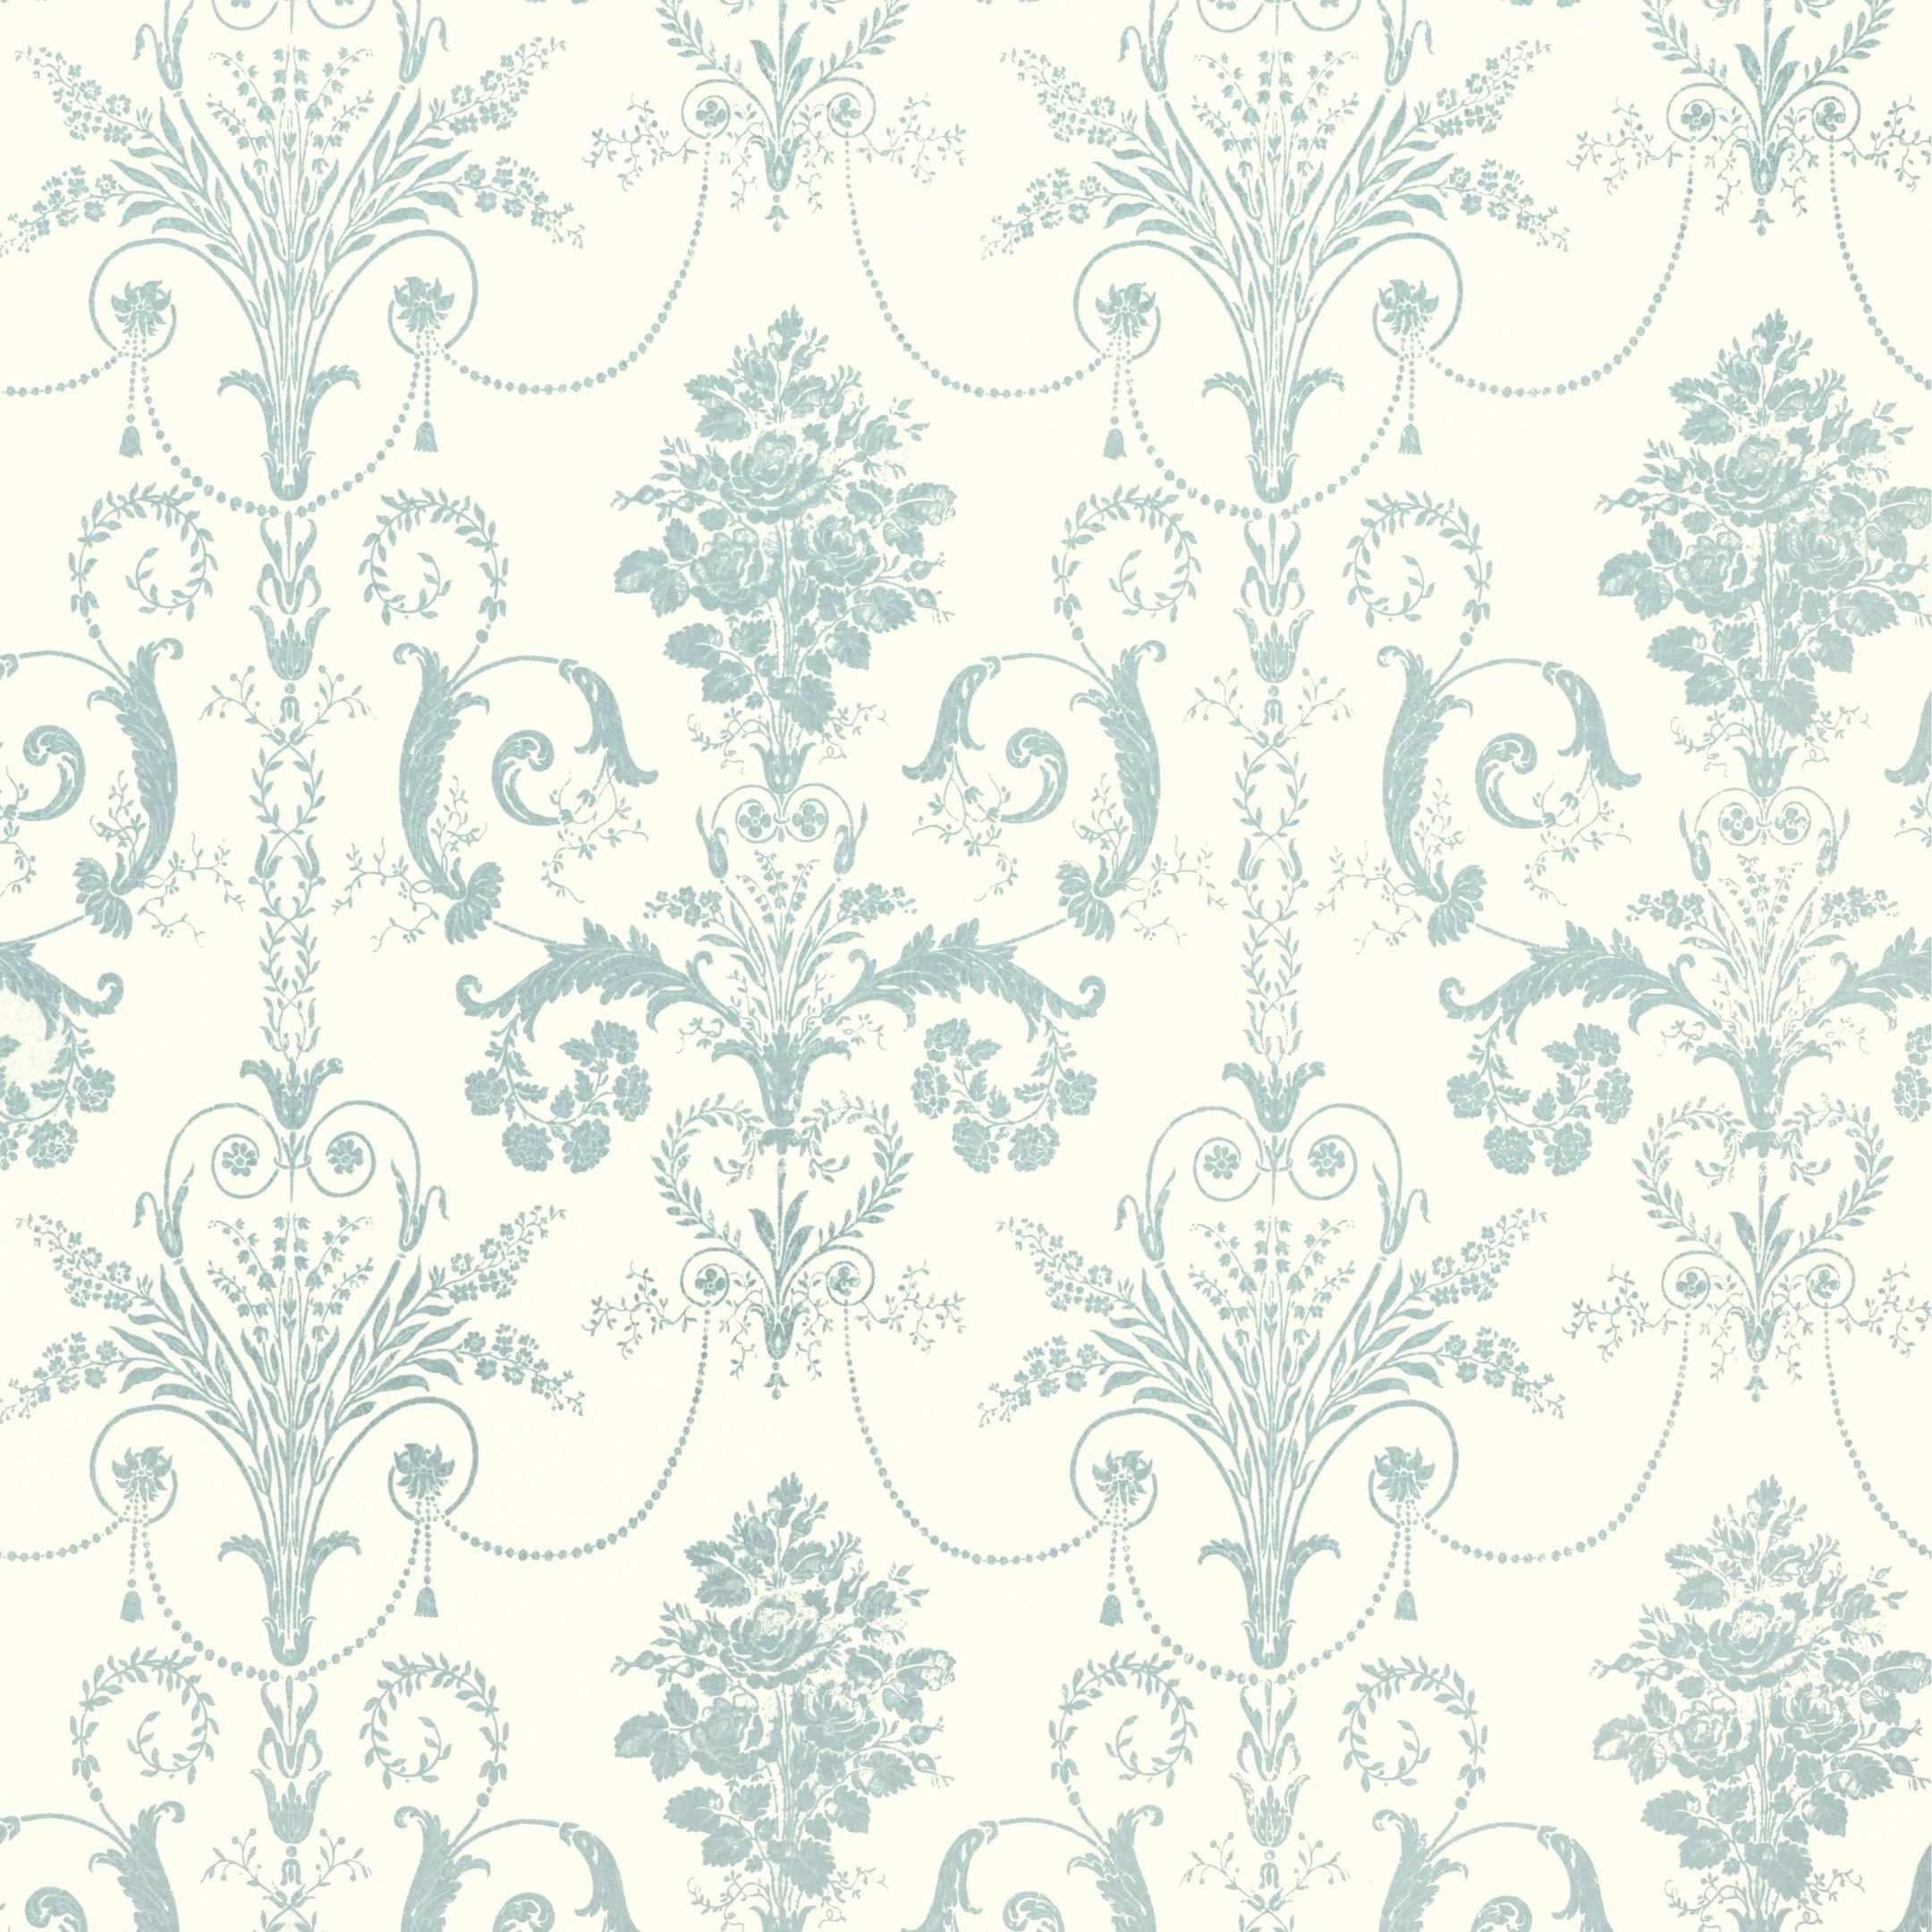 Ikrq0b0ucmg Jpg 2160 2160 With Images Silver Glitter Wallpaper Feature Wallpaper Damask Wallpaper